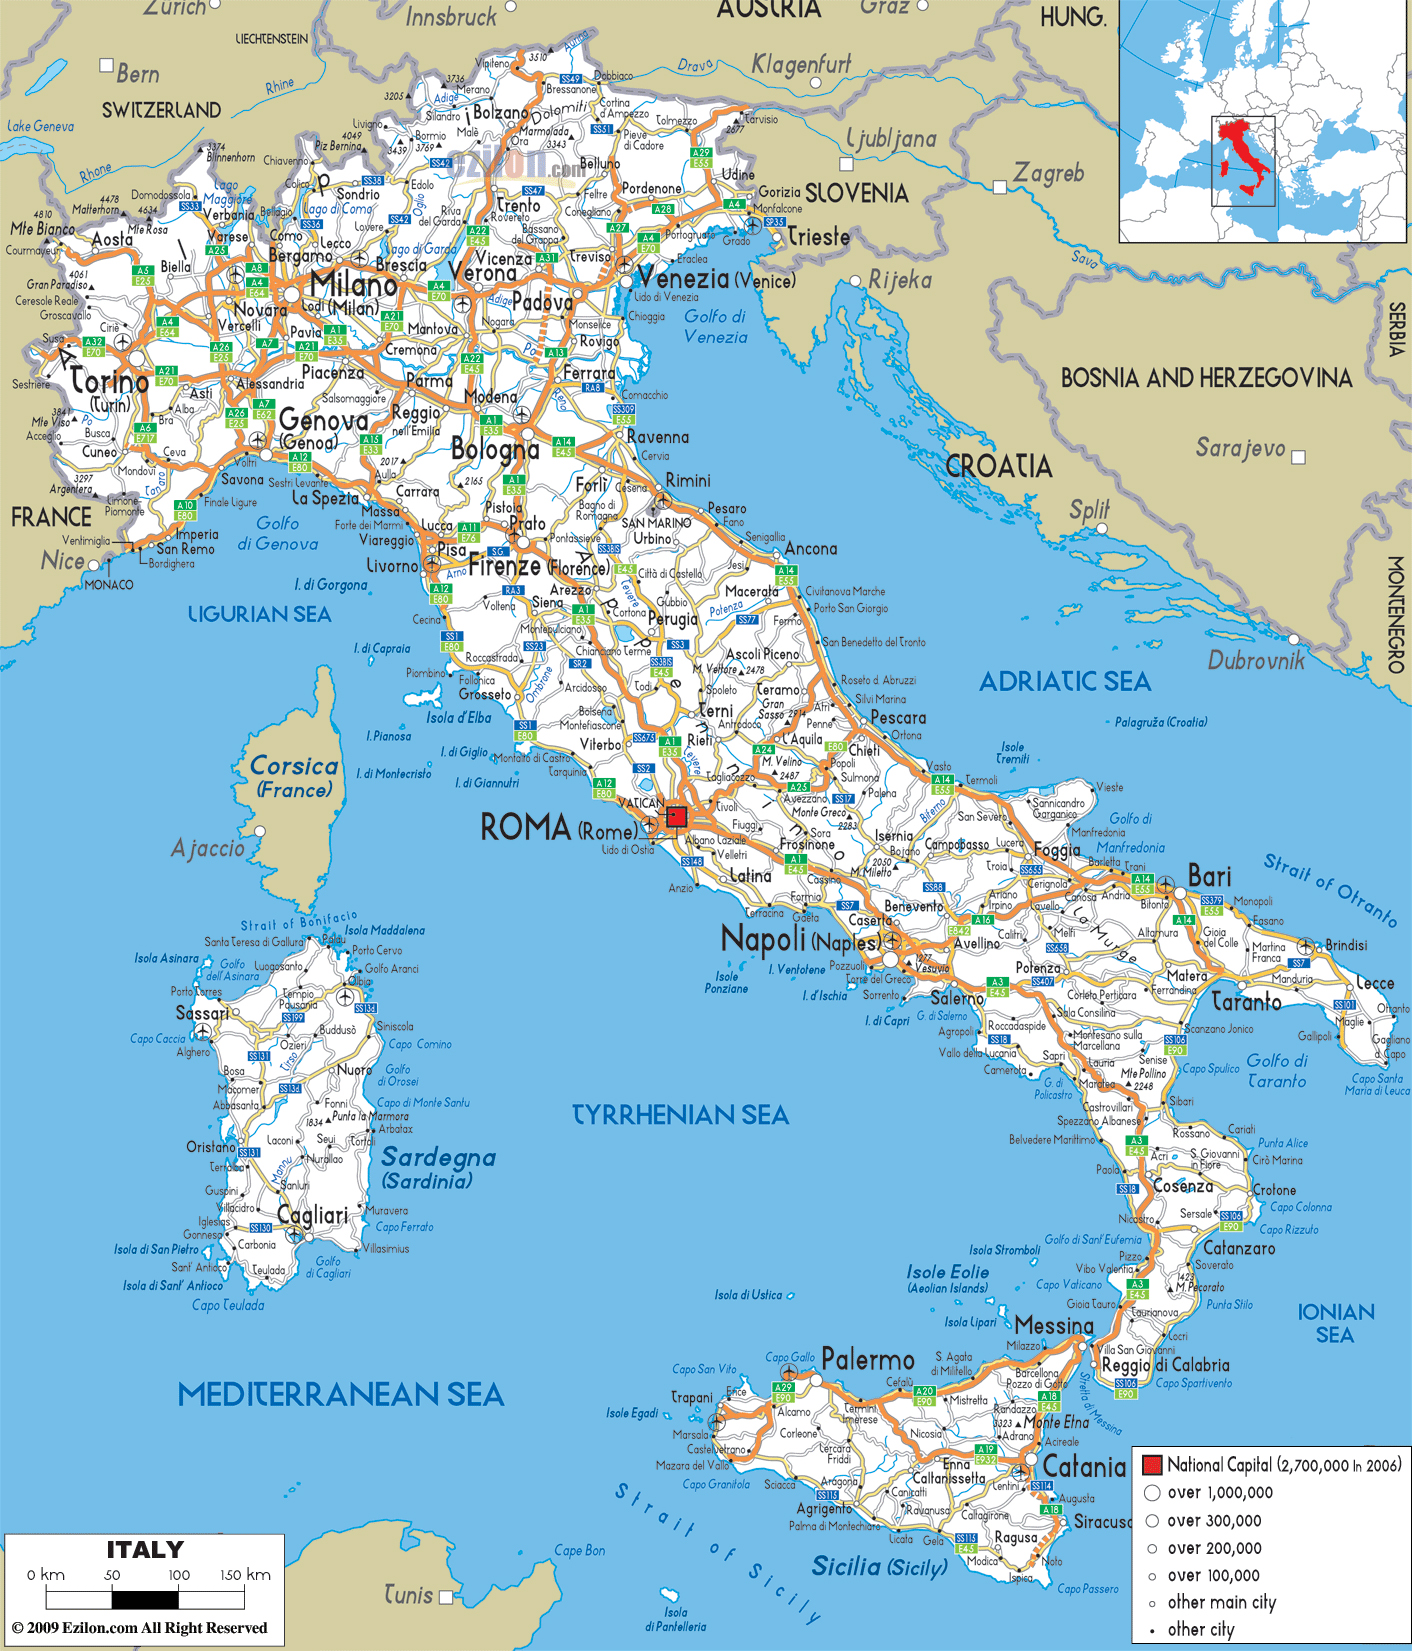 City Map Of Italy Deboomfotografie - Cities map of italy